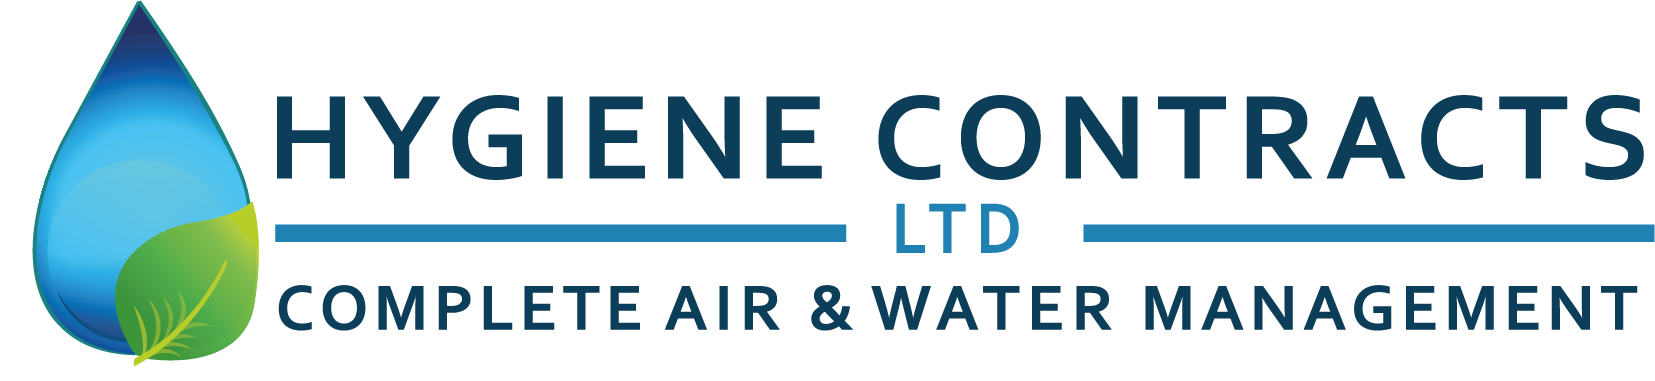 Hygiene Contracts Ltd